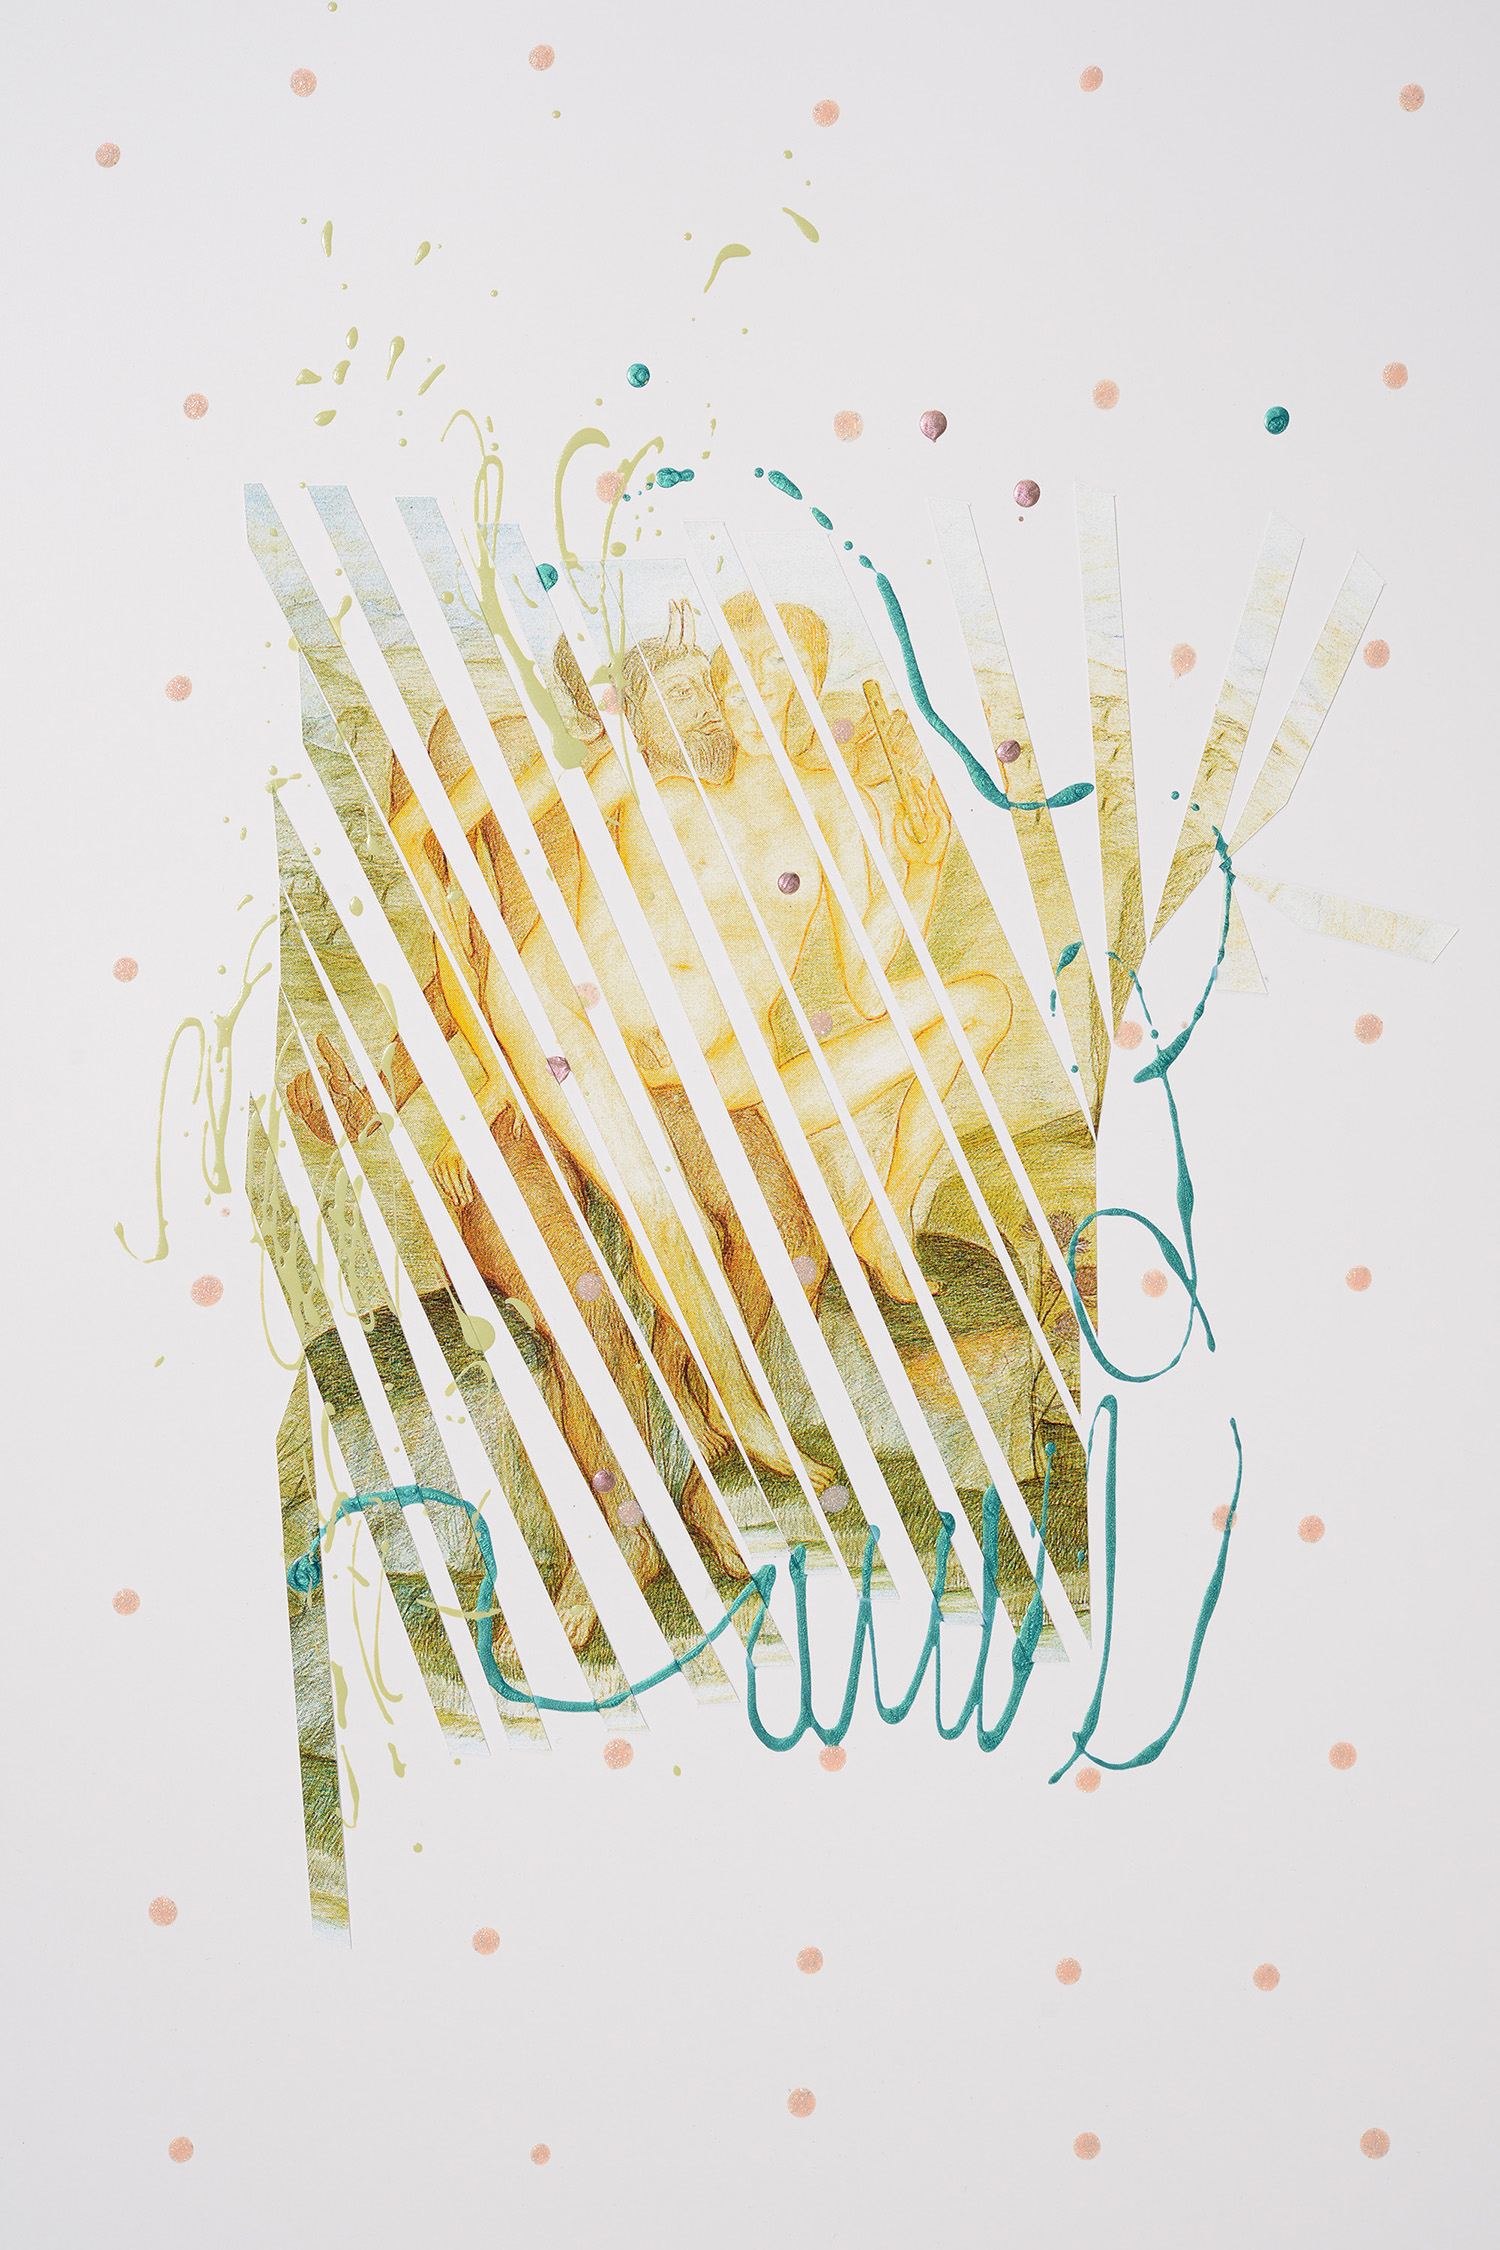 Markues, Hey Nude!, 2014, mixed media on paper, 60 x 40 cm.jpg